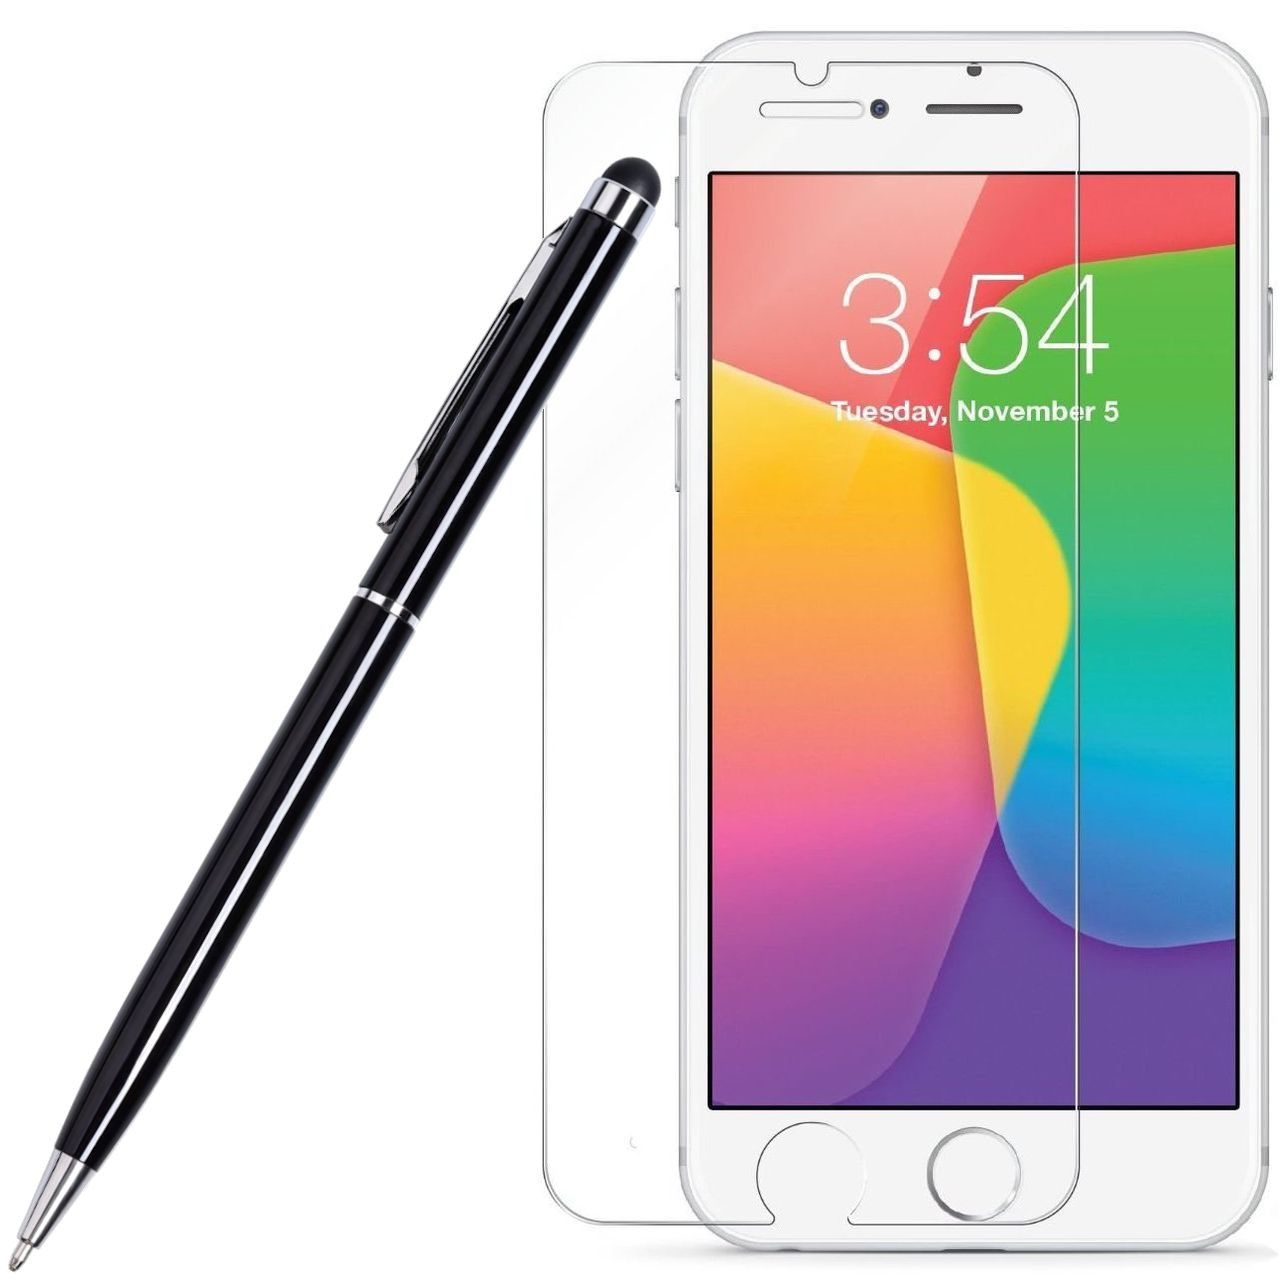 Hd Premium Round Edge Tempered Glass Screen Protector Stylus Pen For Iphone 8 7 6s 6